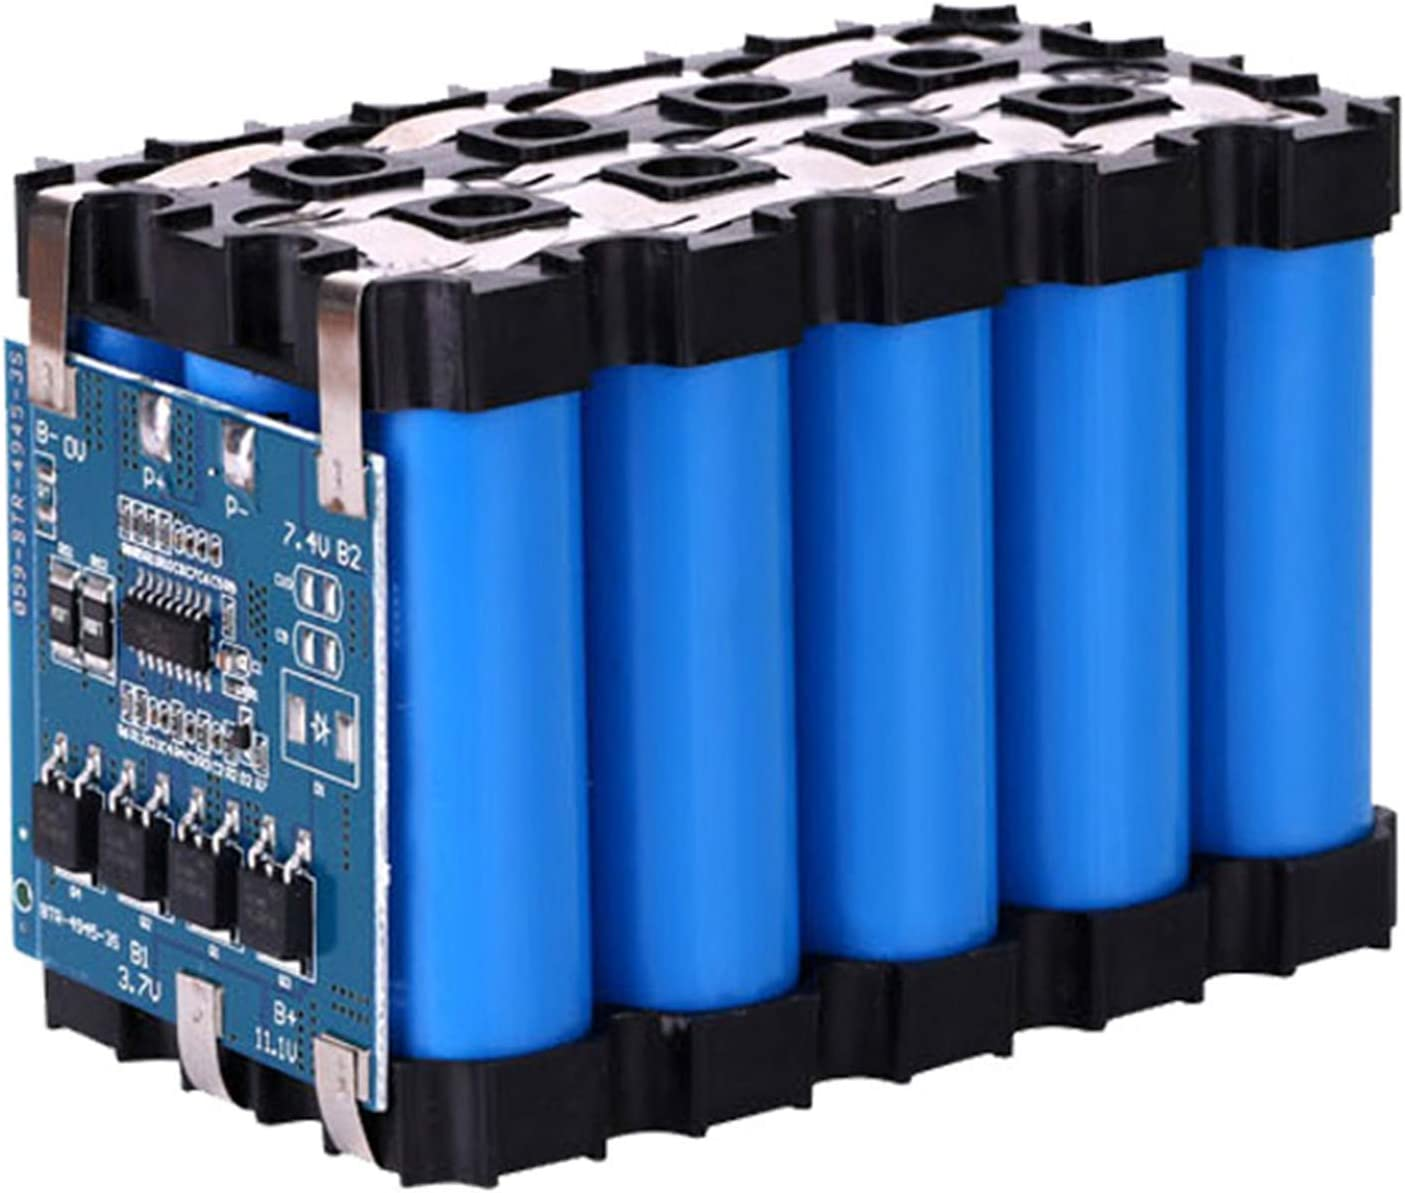 Rechargeable Lithium Ion Energy Storage Battery Pack with Built in BMS Energy Storage Battery Pack,12v10Ah 12v12ah